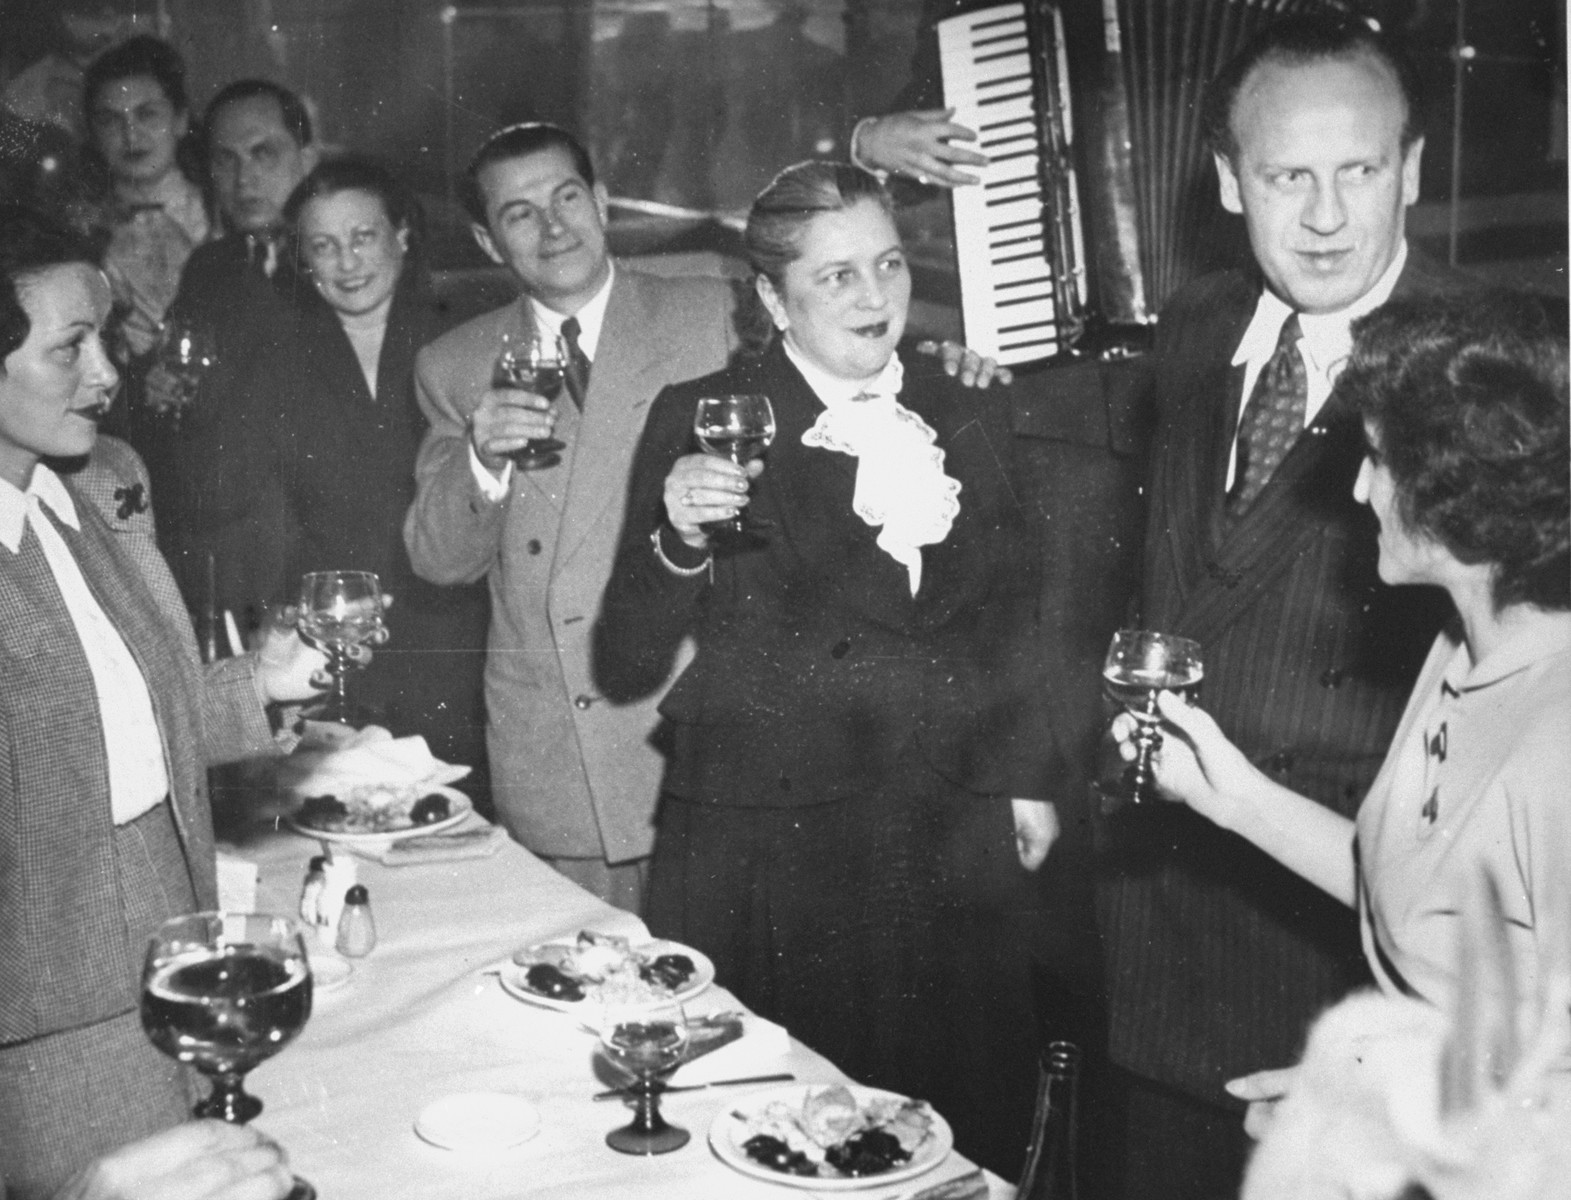 "Early in 1949, a group of some 35 ""Schindlerjuden"" gathered privately at Aux Armes de Colmar, an Alsatian restaurant in the north of Paris, to celebrate their friend Oskar Schindler, who was then passing through the city."